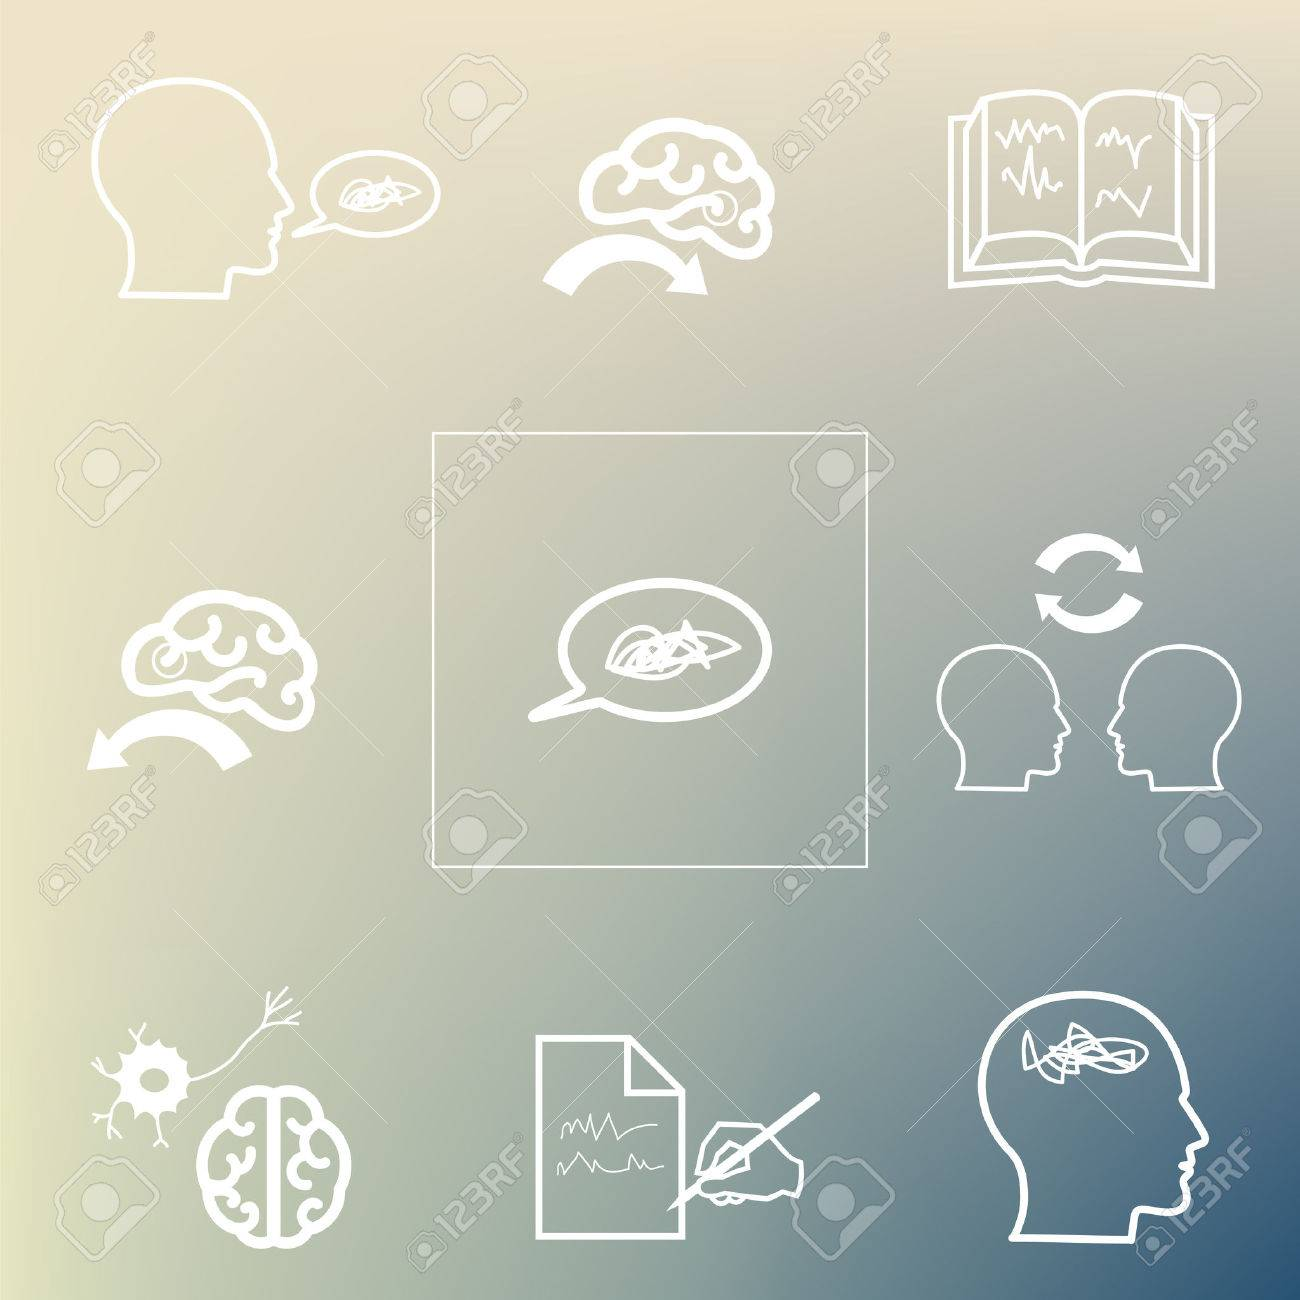 vector illustration / aphasia symptoms / speech and language disorders icons on the blurred background - 61192934